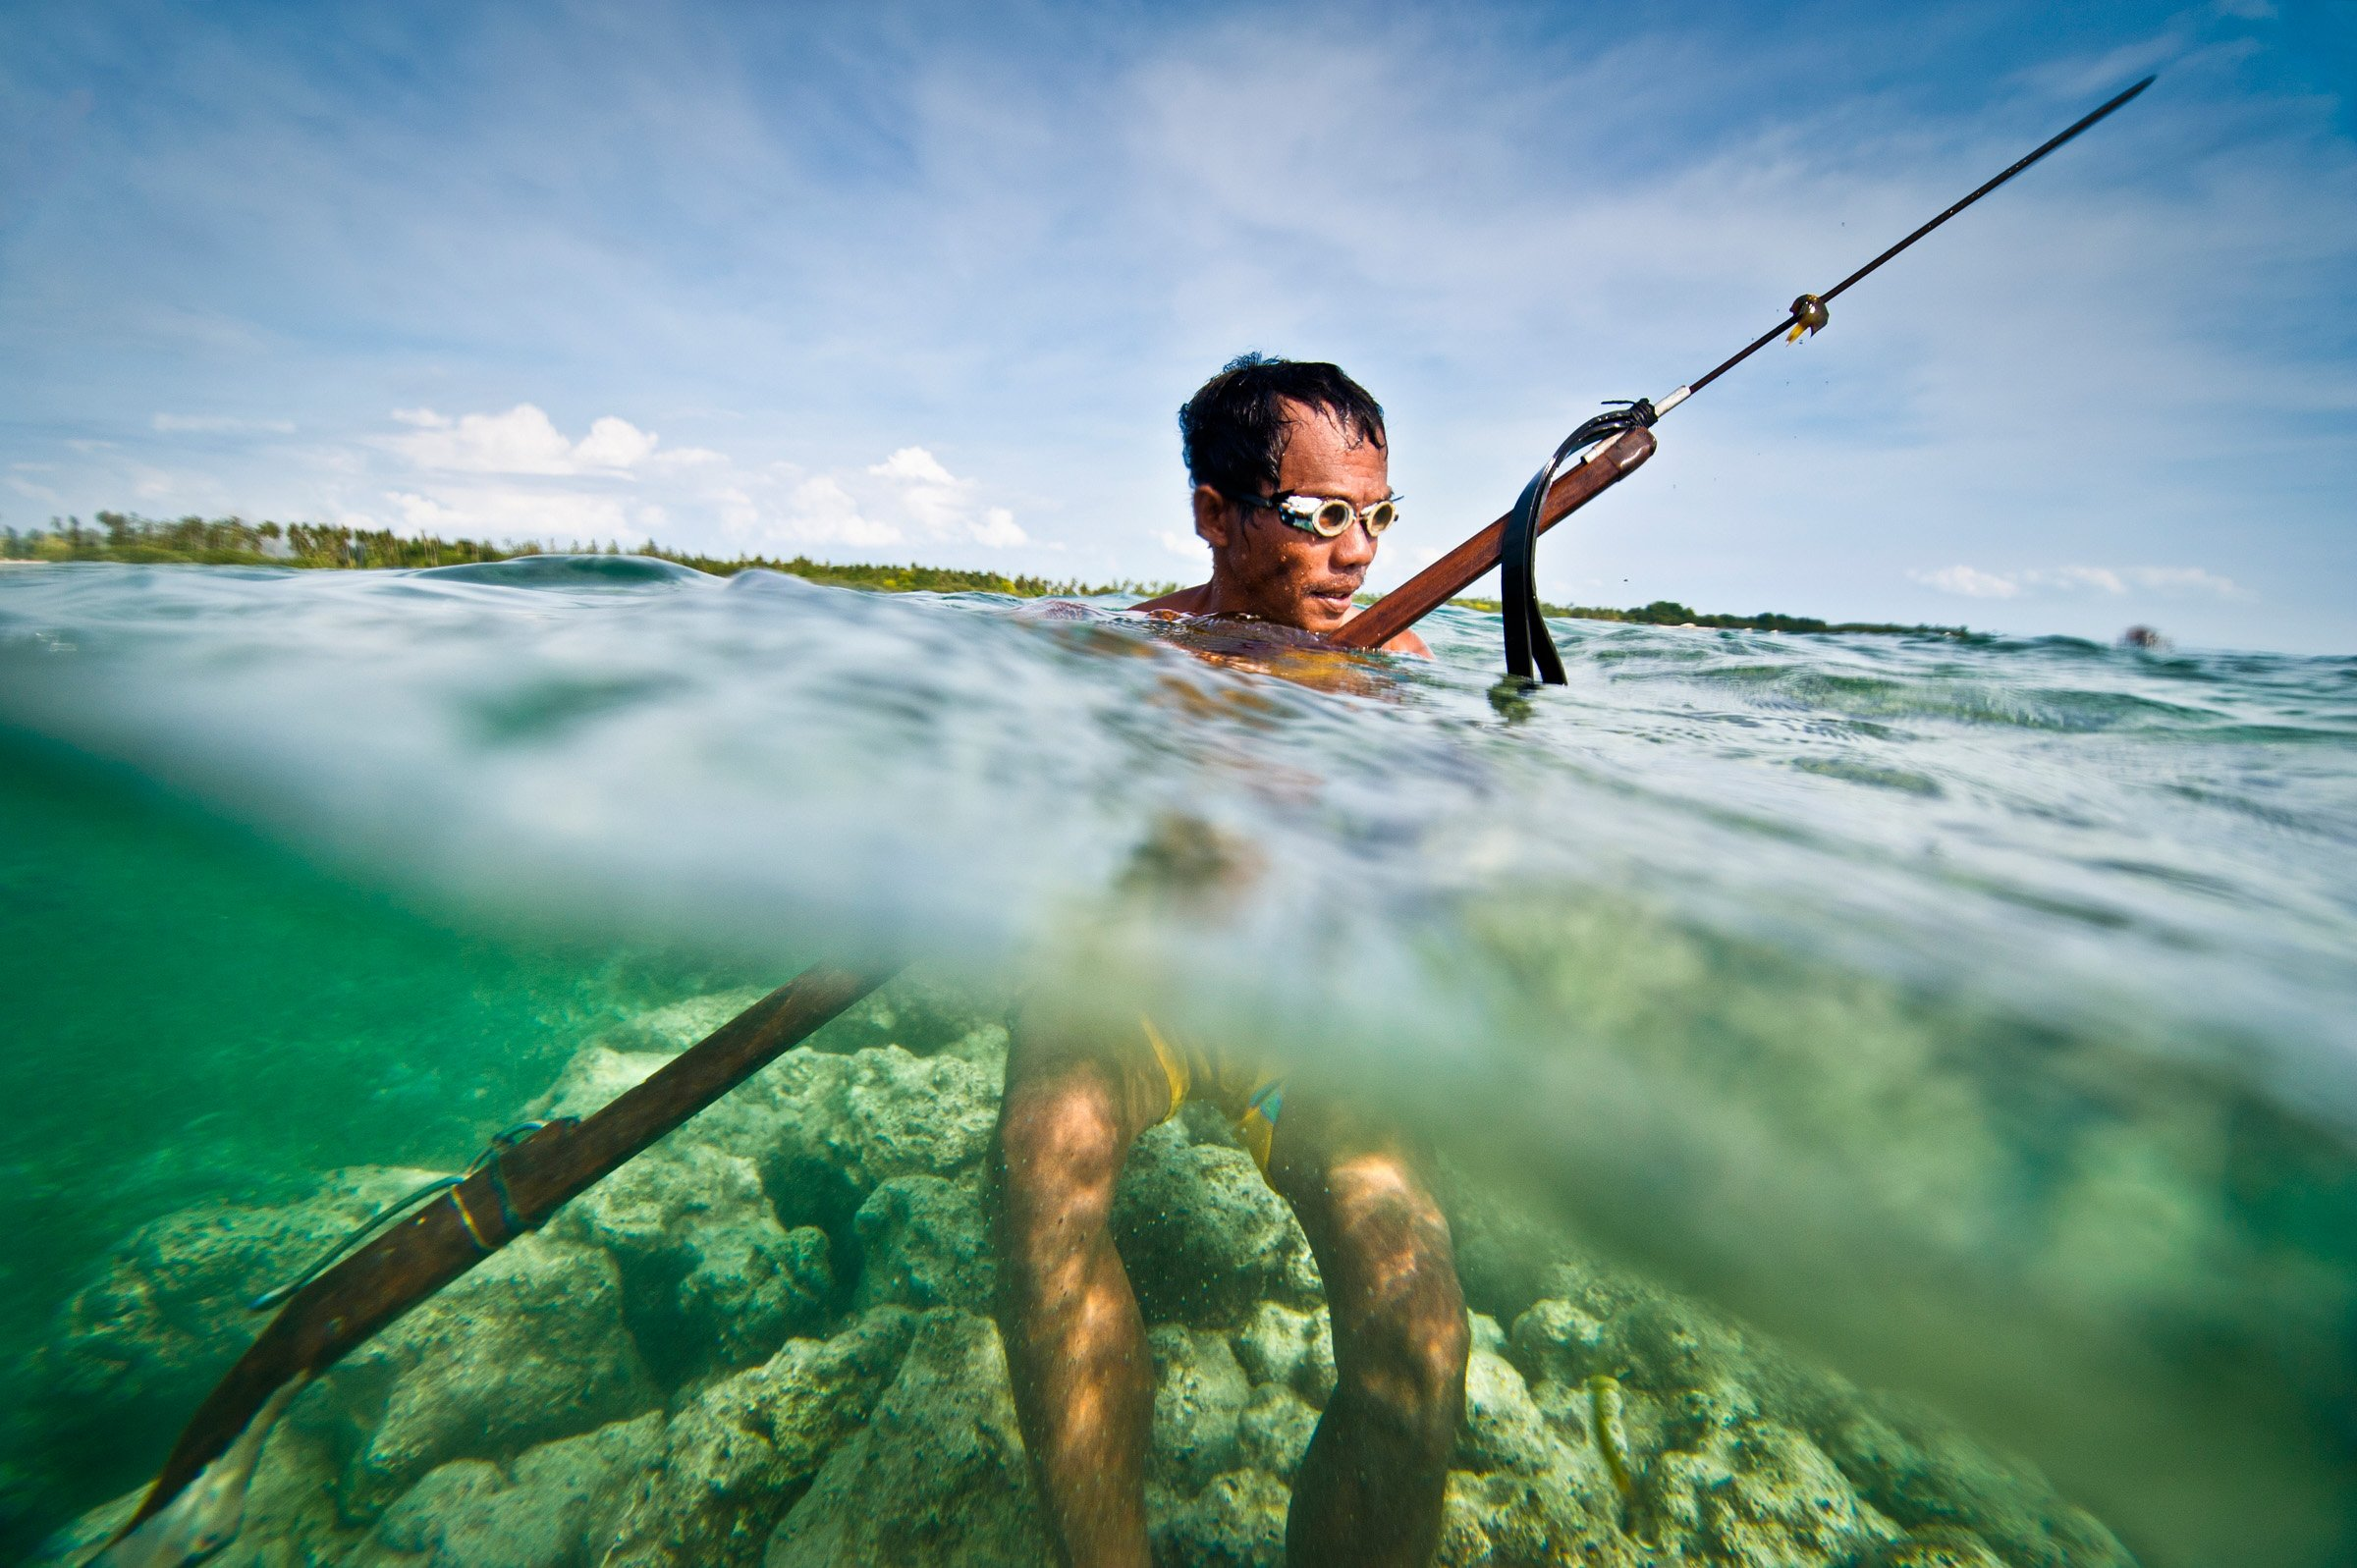 A traditional spear fisher in the tropical waters of Cebu, Philippines.